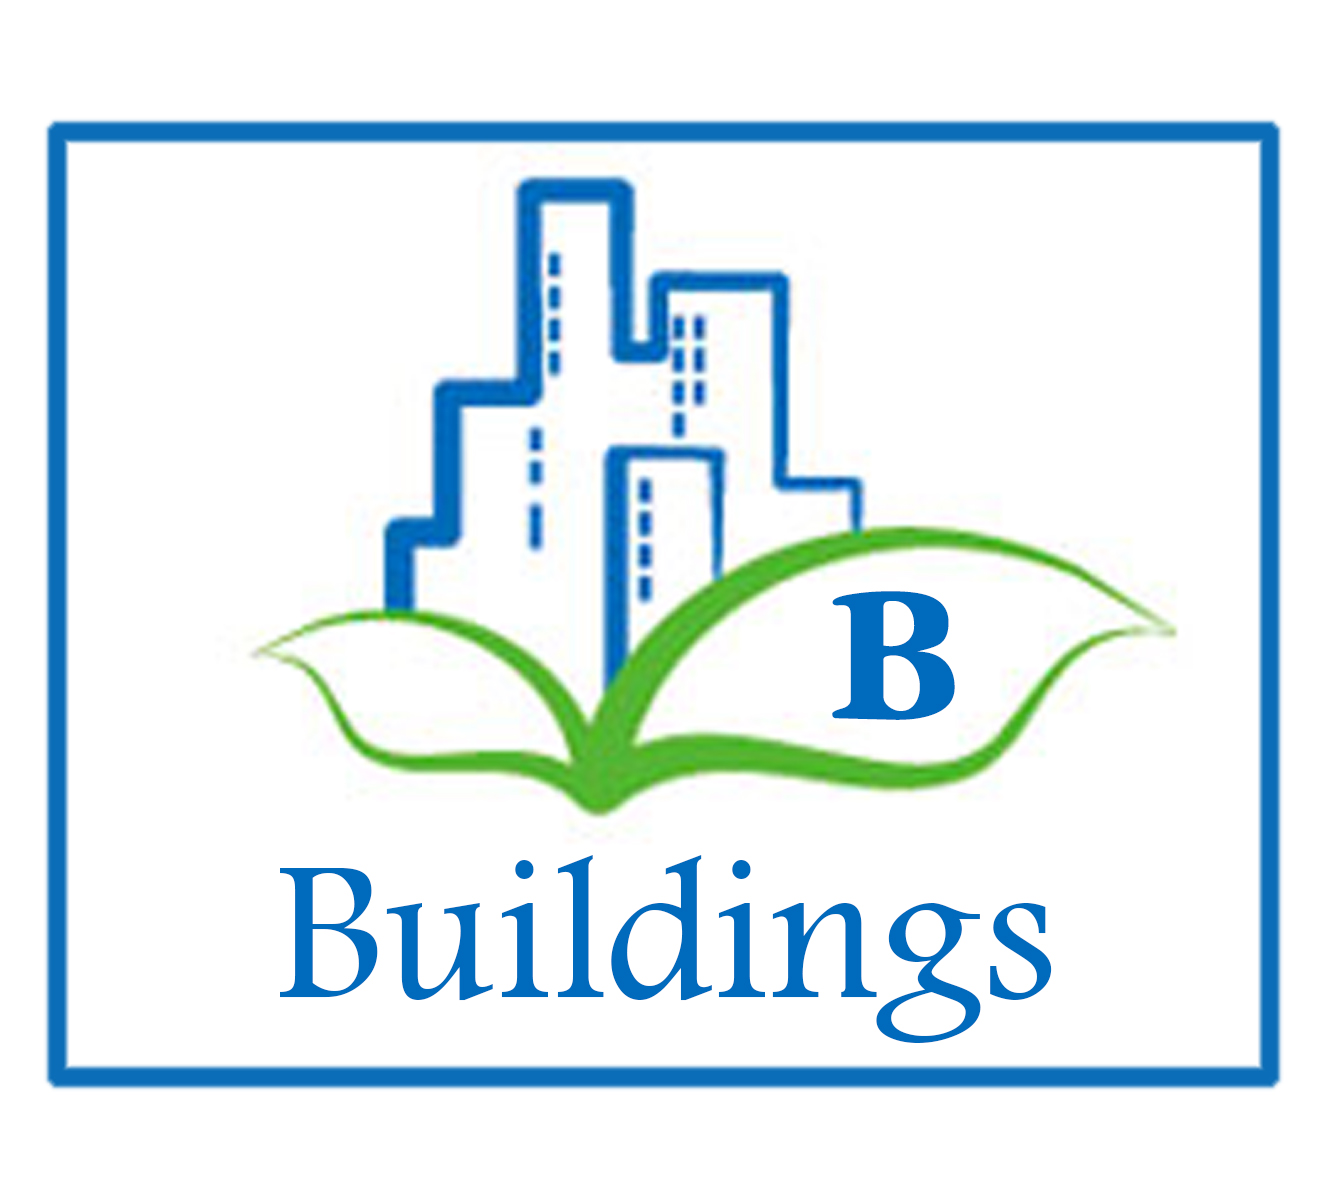 Buildings Projects